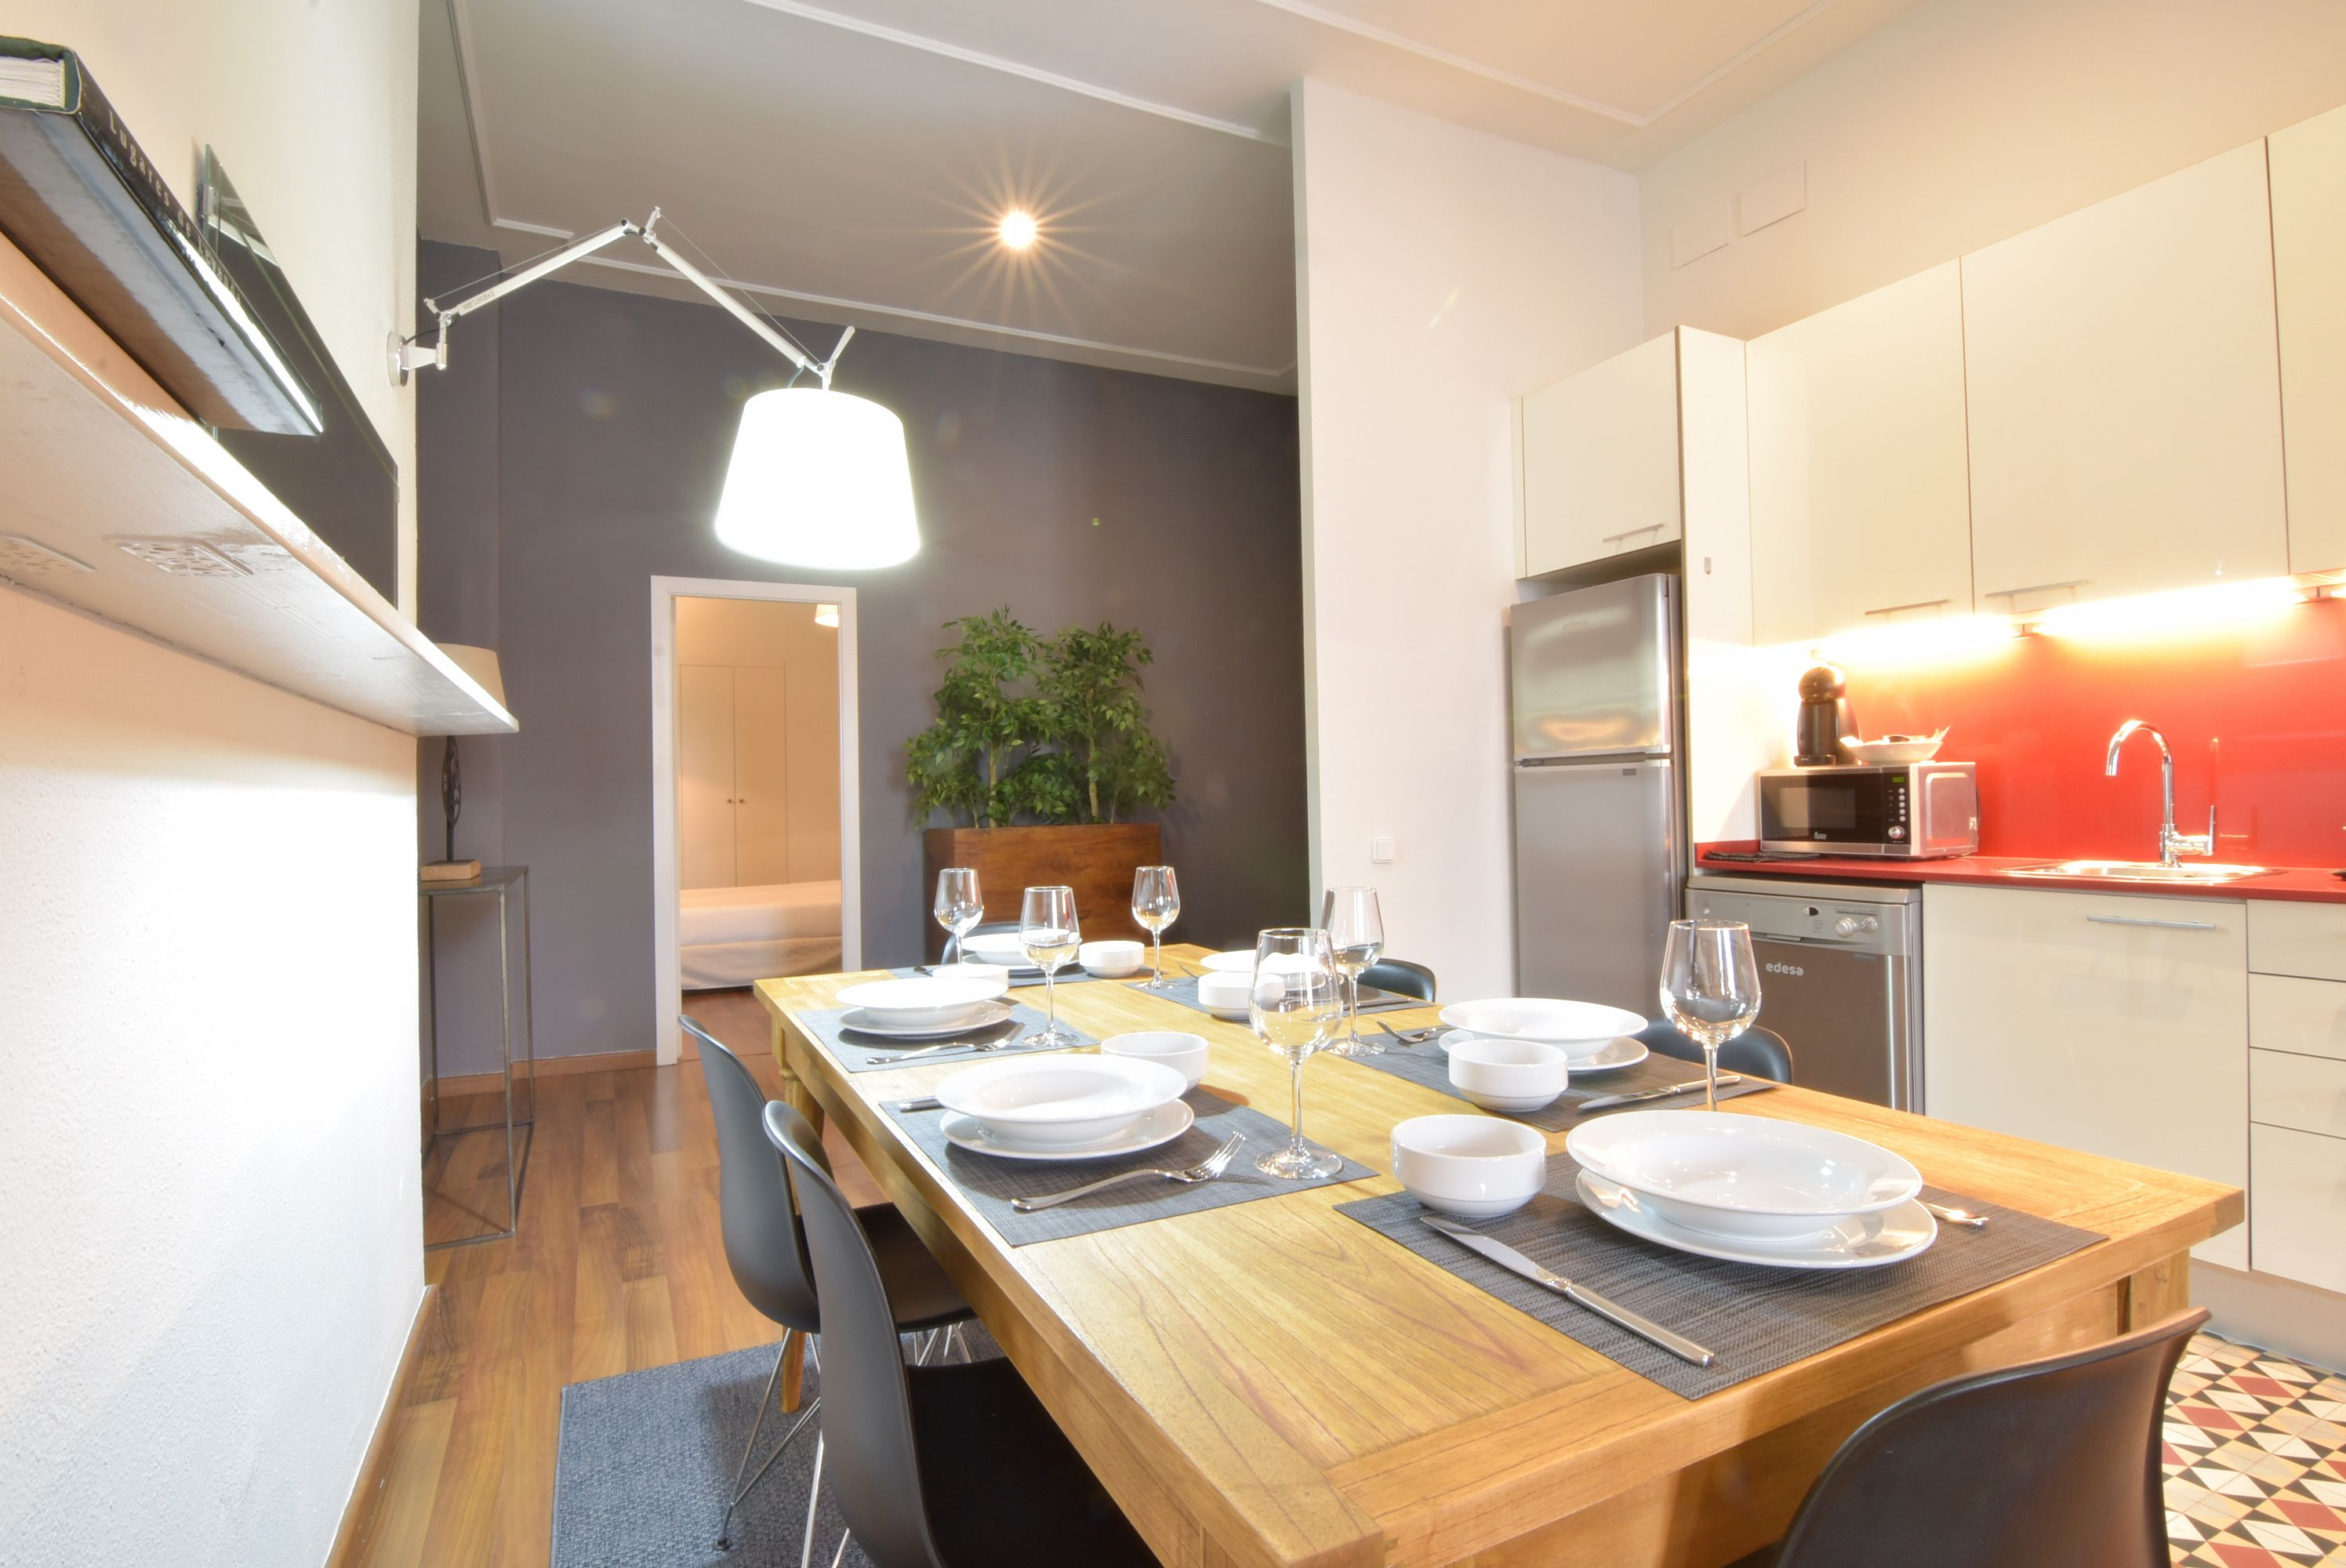 5. Cocina Comedor - Kitchen and Dining room | 1840 Apartments